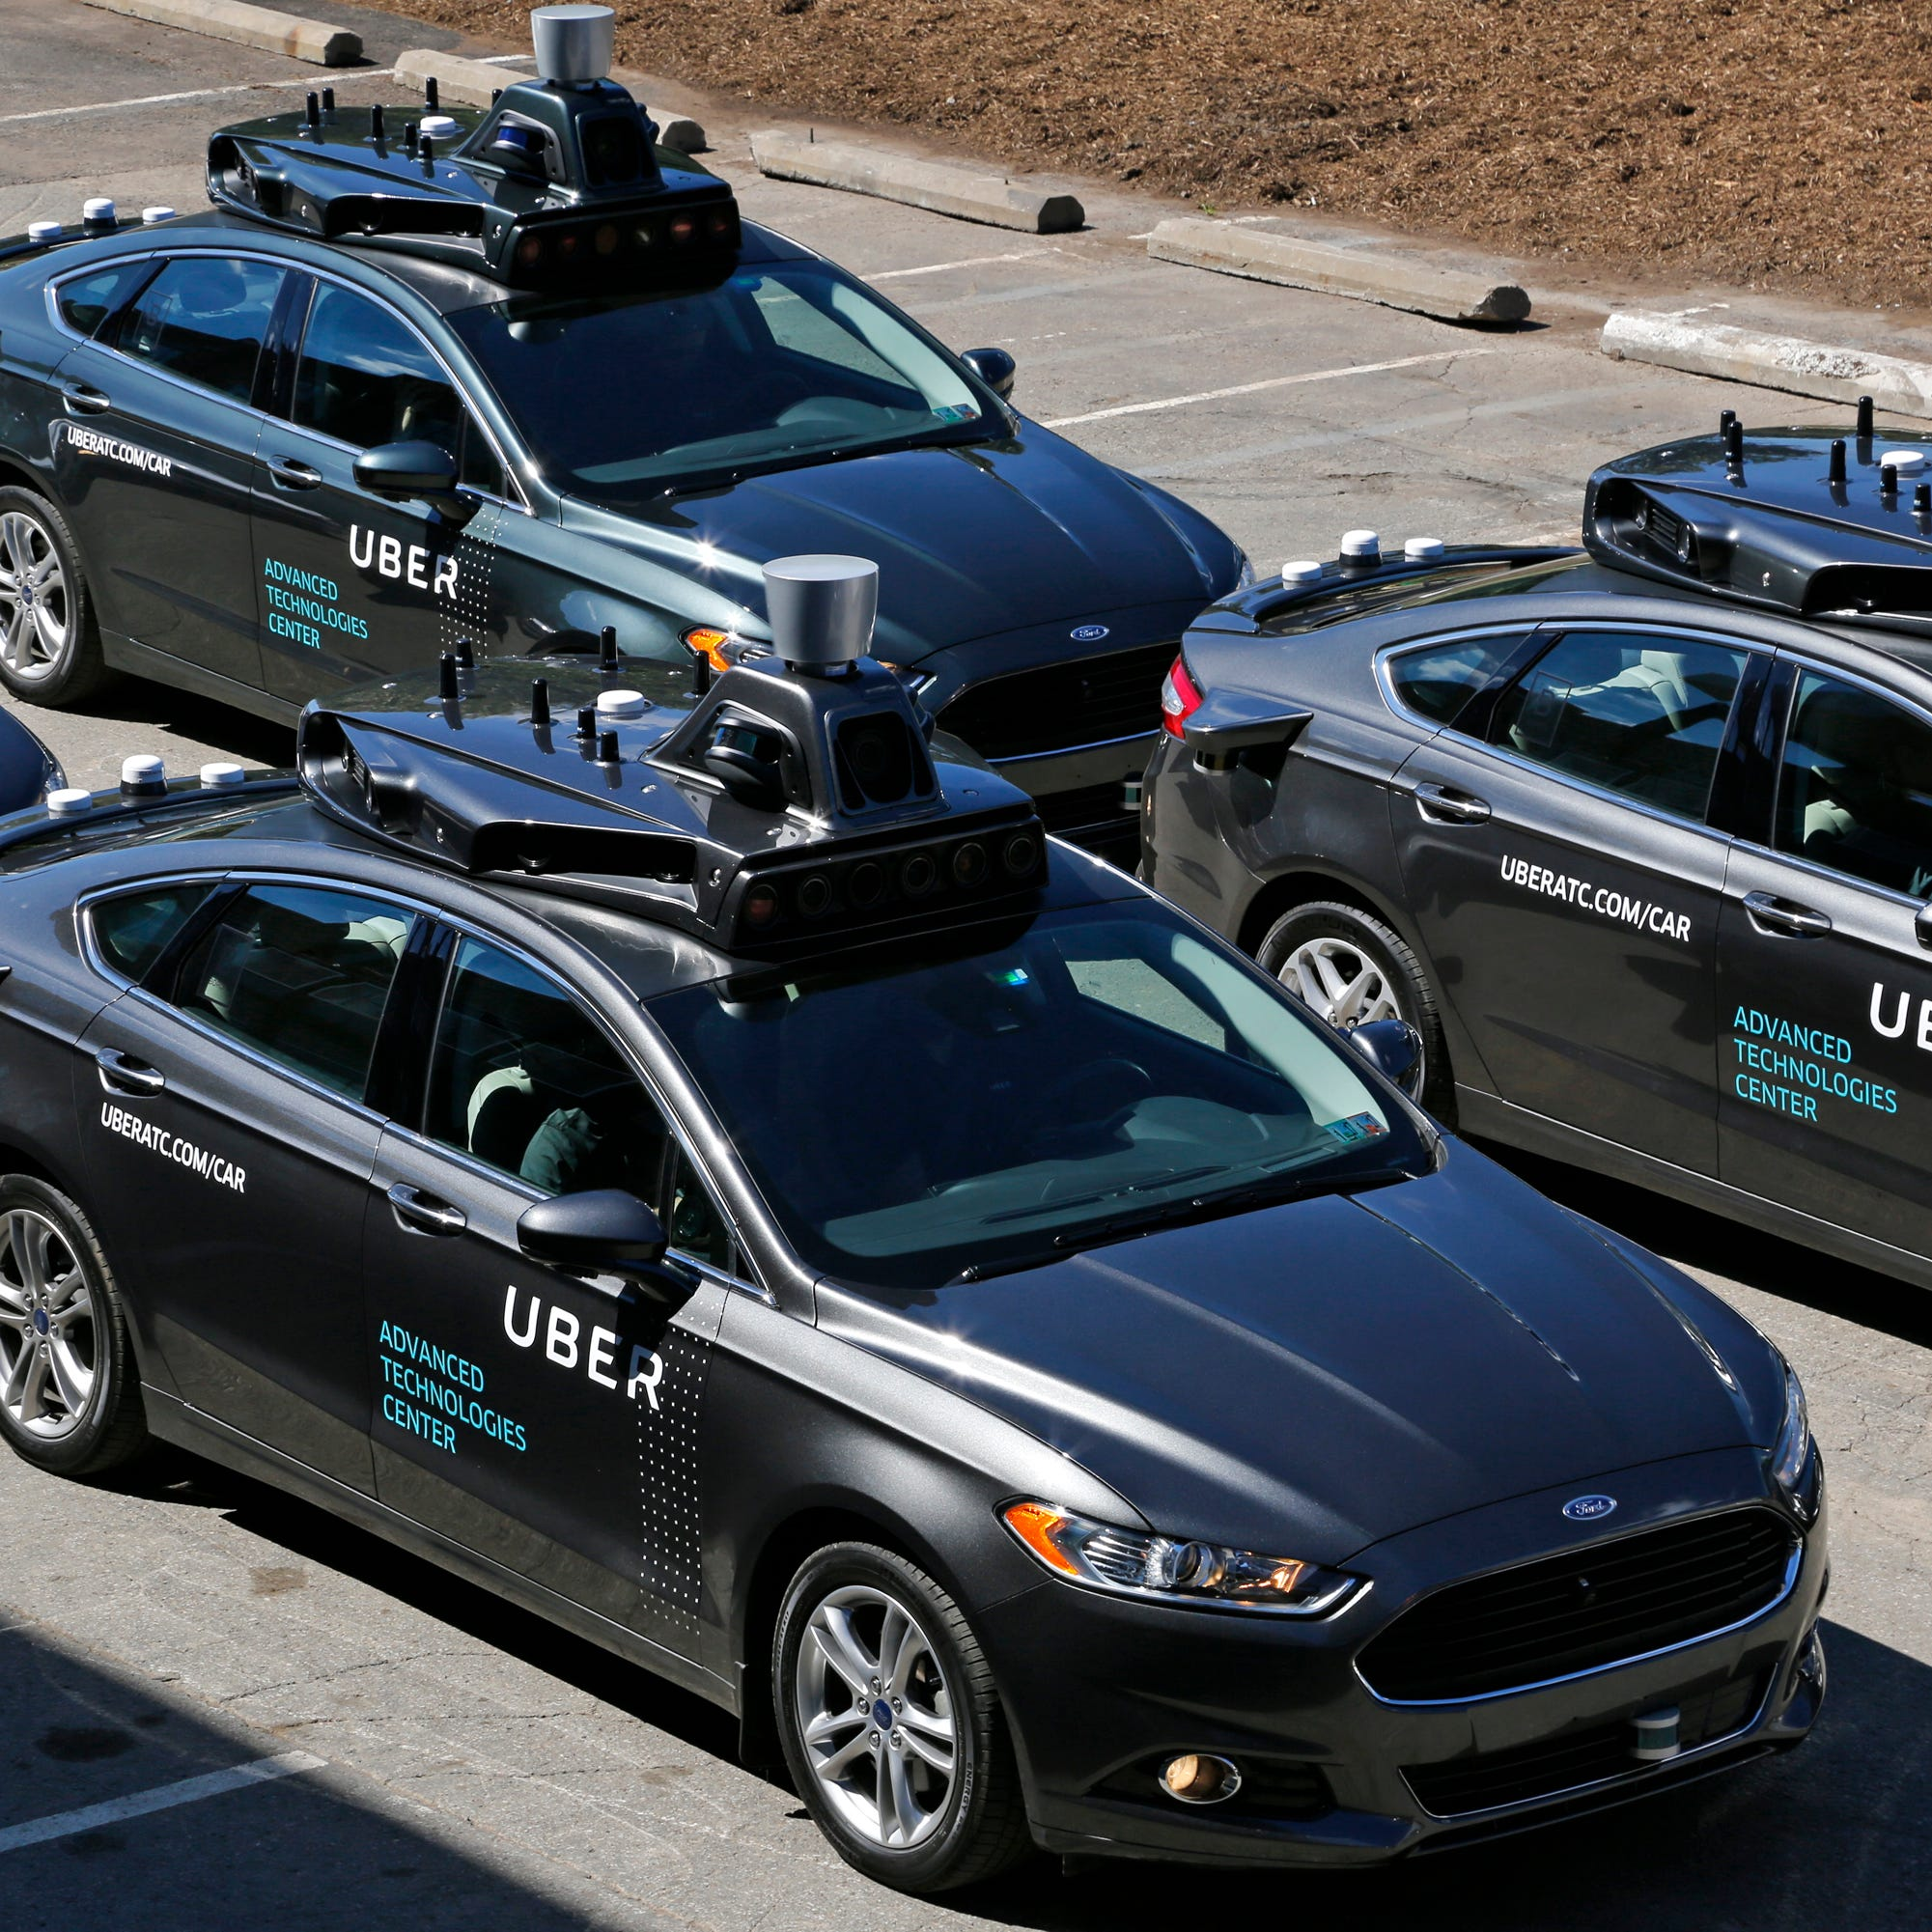 Study: States should require licensed drivers for robot cars